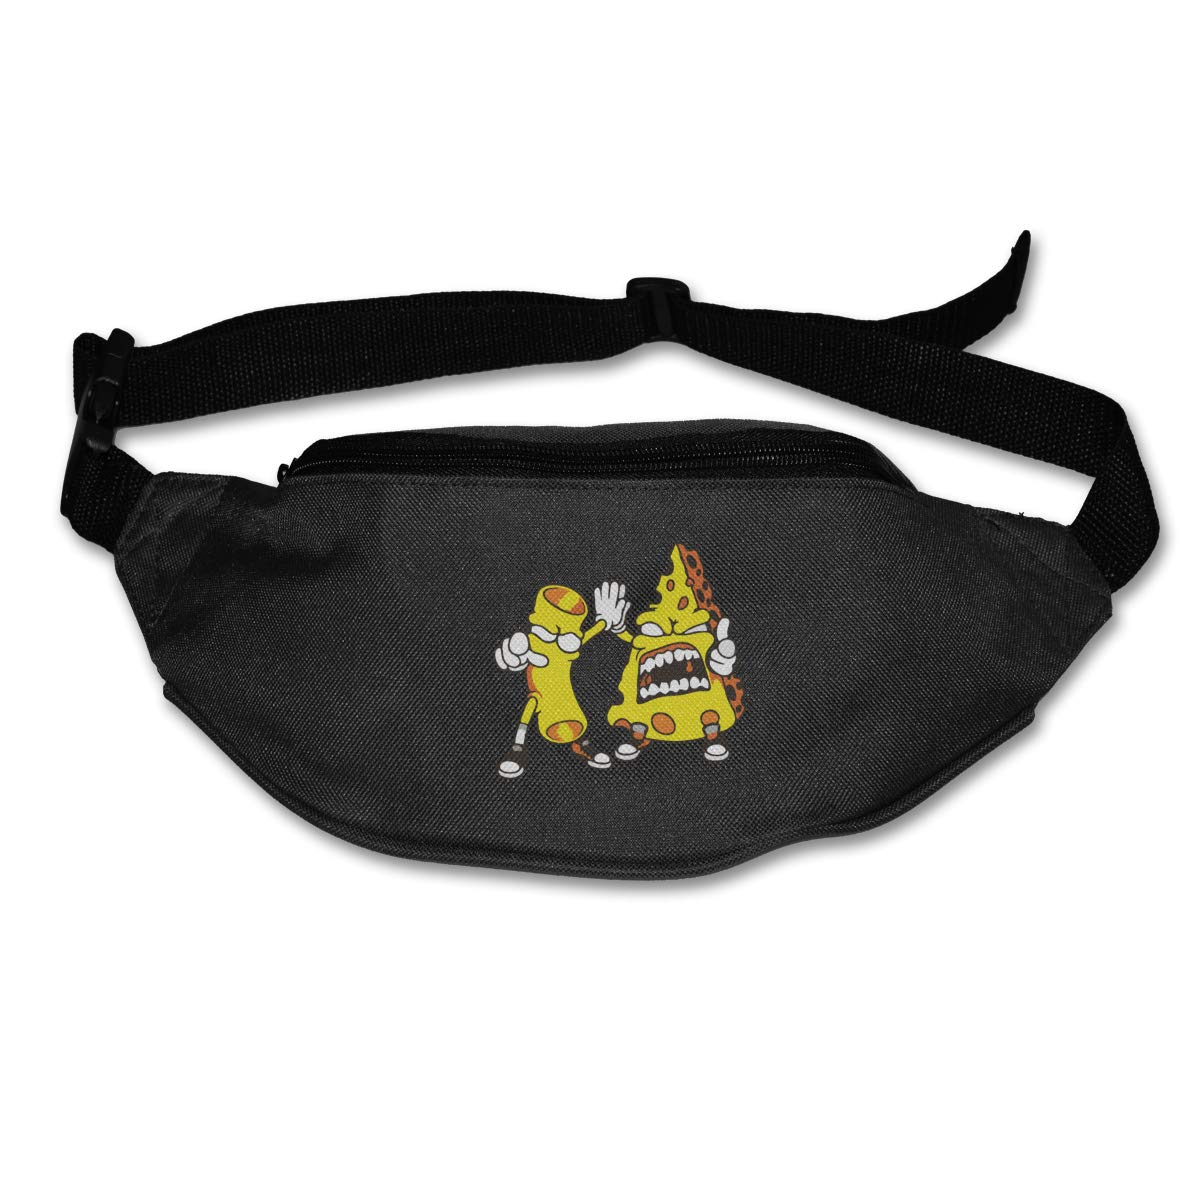 Macaroni And Cheese Sport Waist Pack Fanny Pack Adjustable For Run